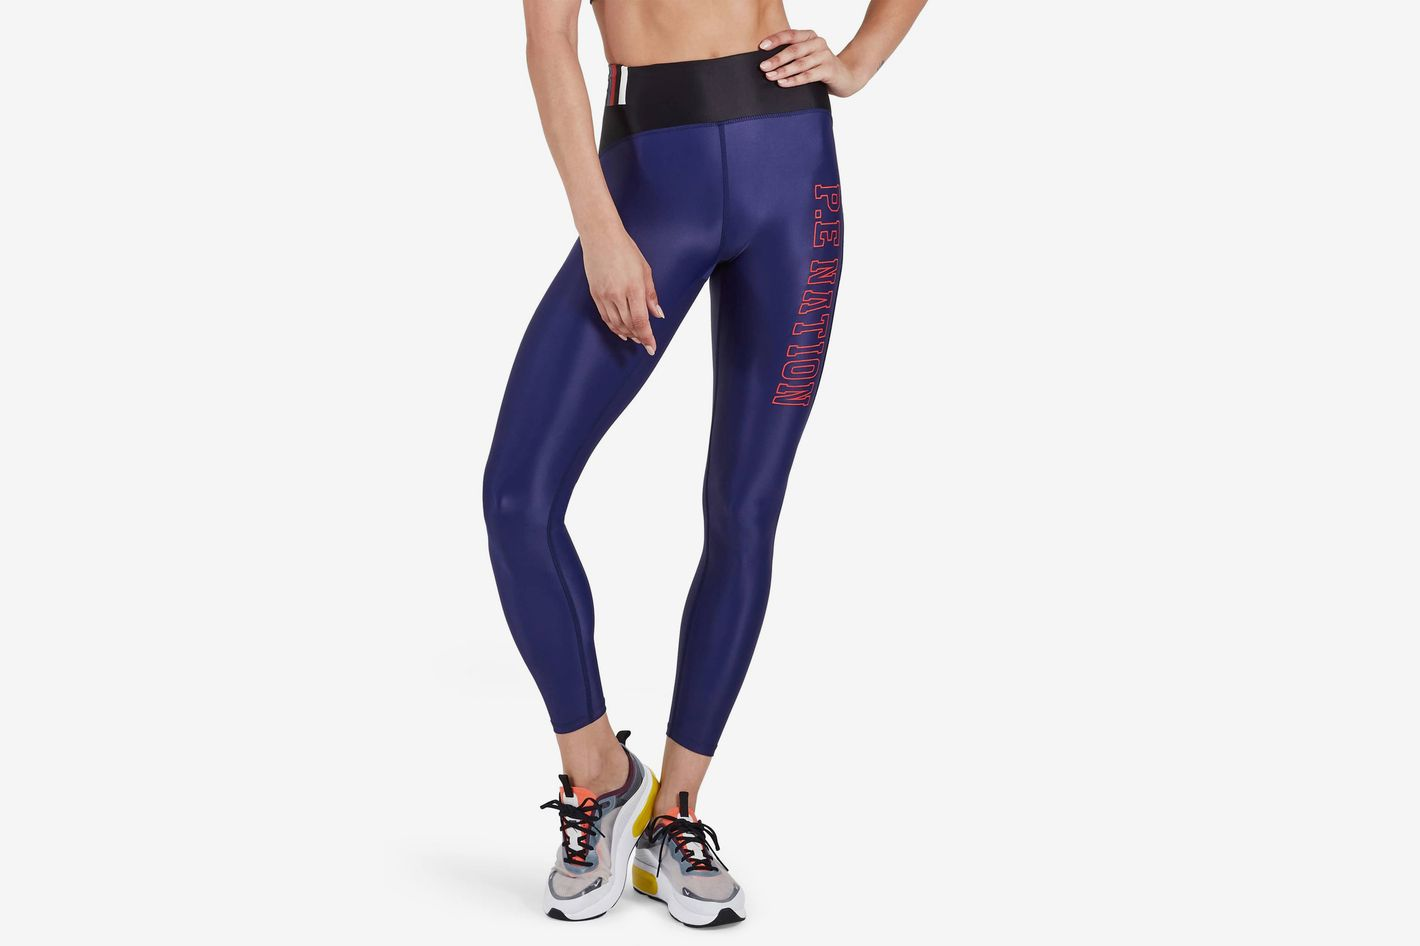 6856577d90f0a The 13 Best Workout Leggings for Running and Yoga 2019